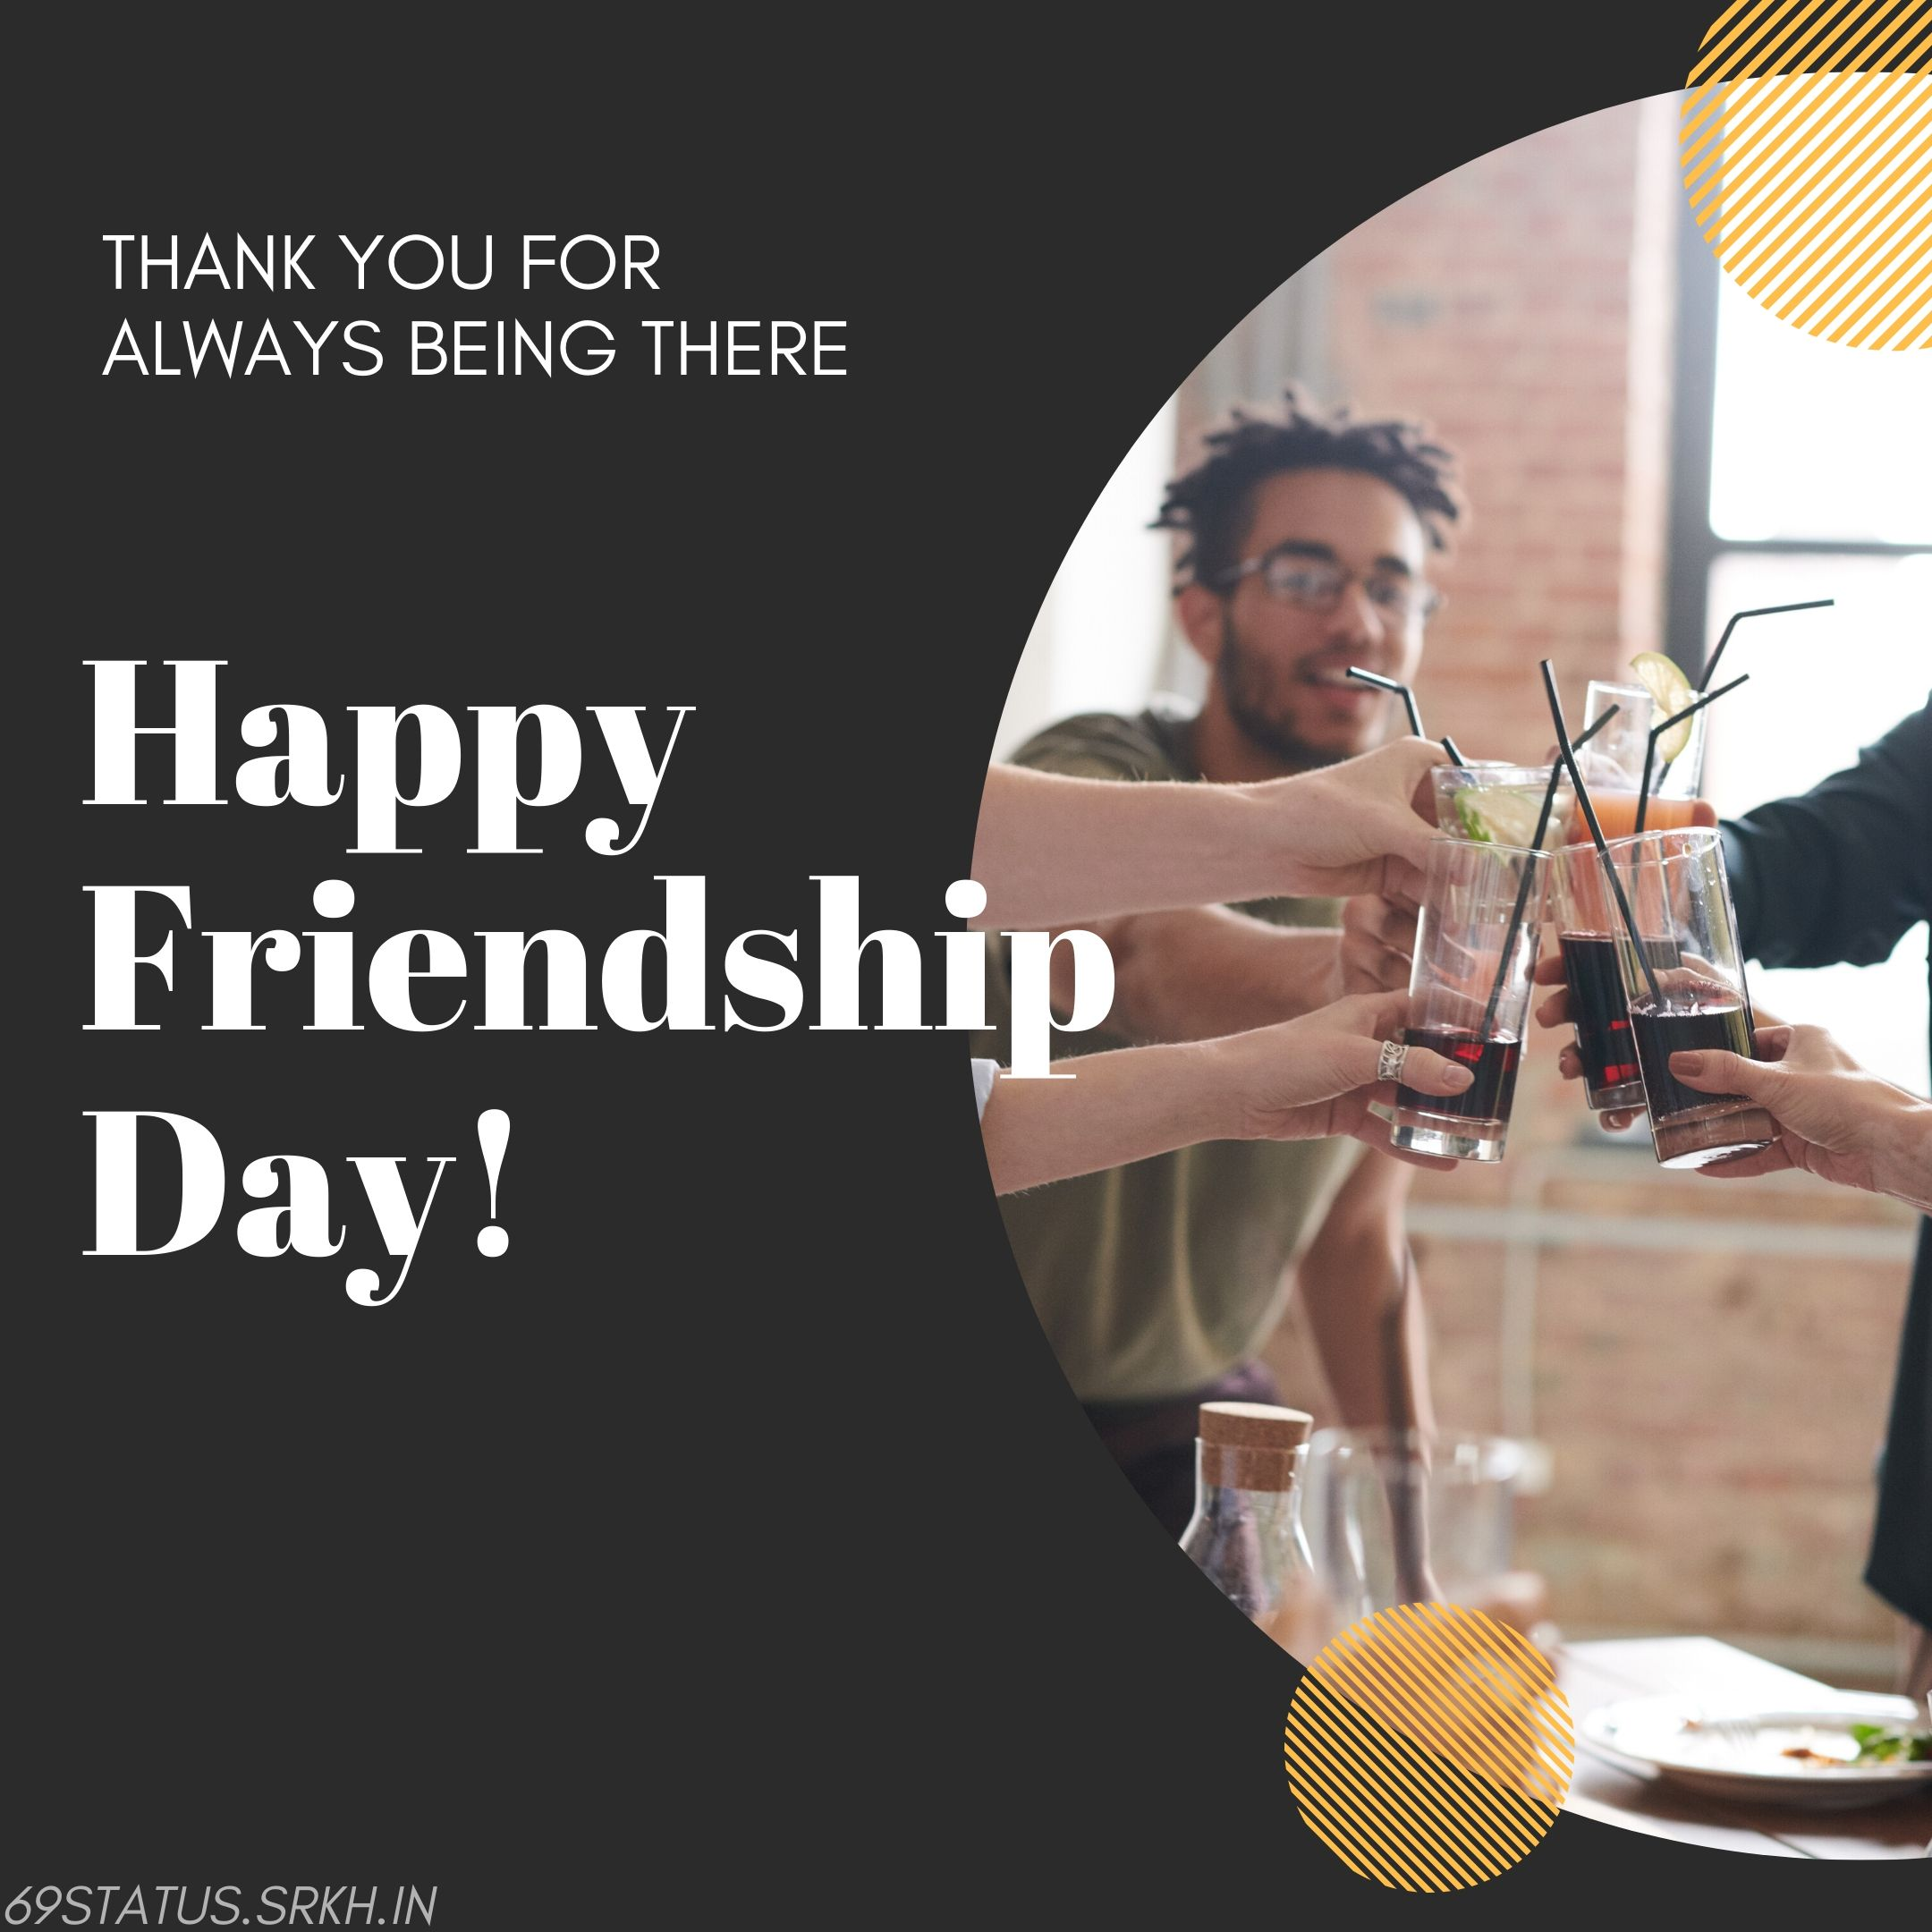 Images of Happy Friendship Day Wish full HD free download.